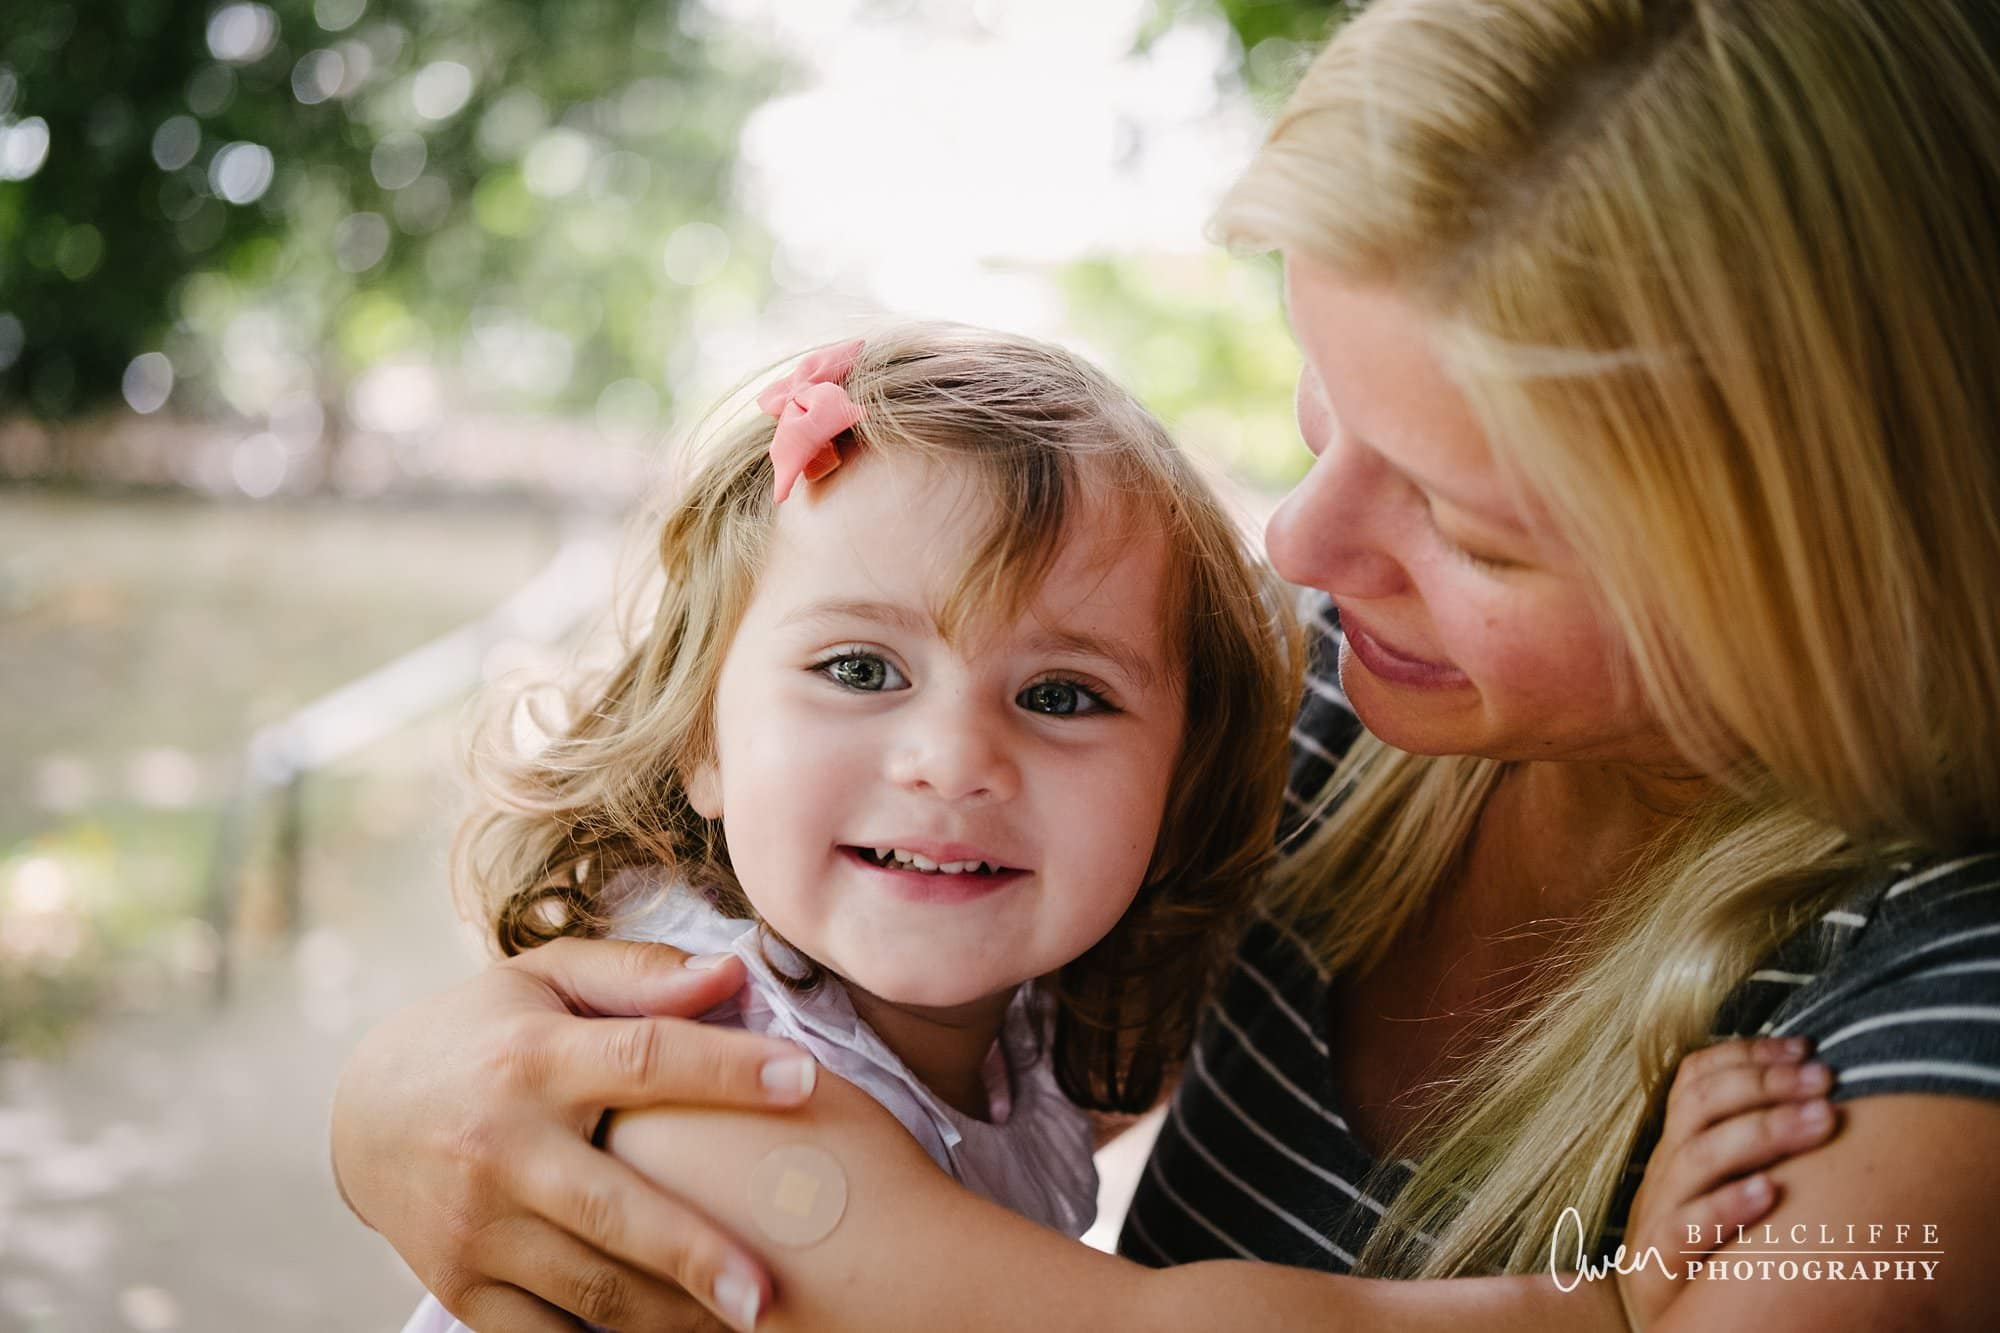 london family photographer london belgravia w1 018 - Belgravia Family Photography | The W Family